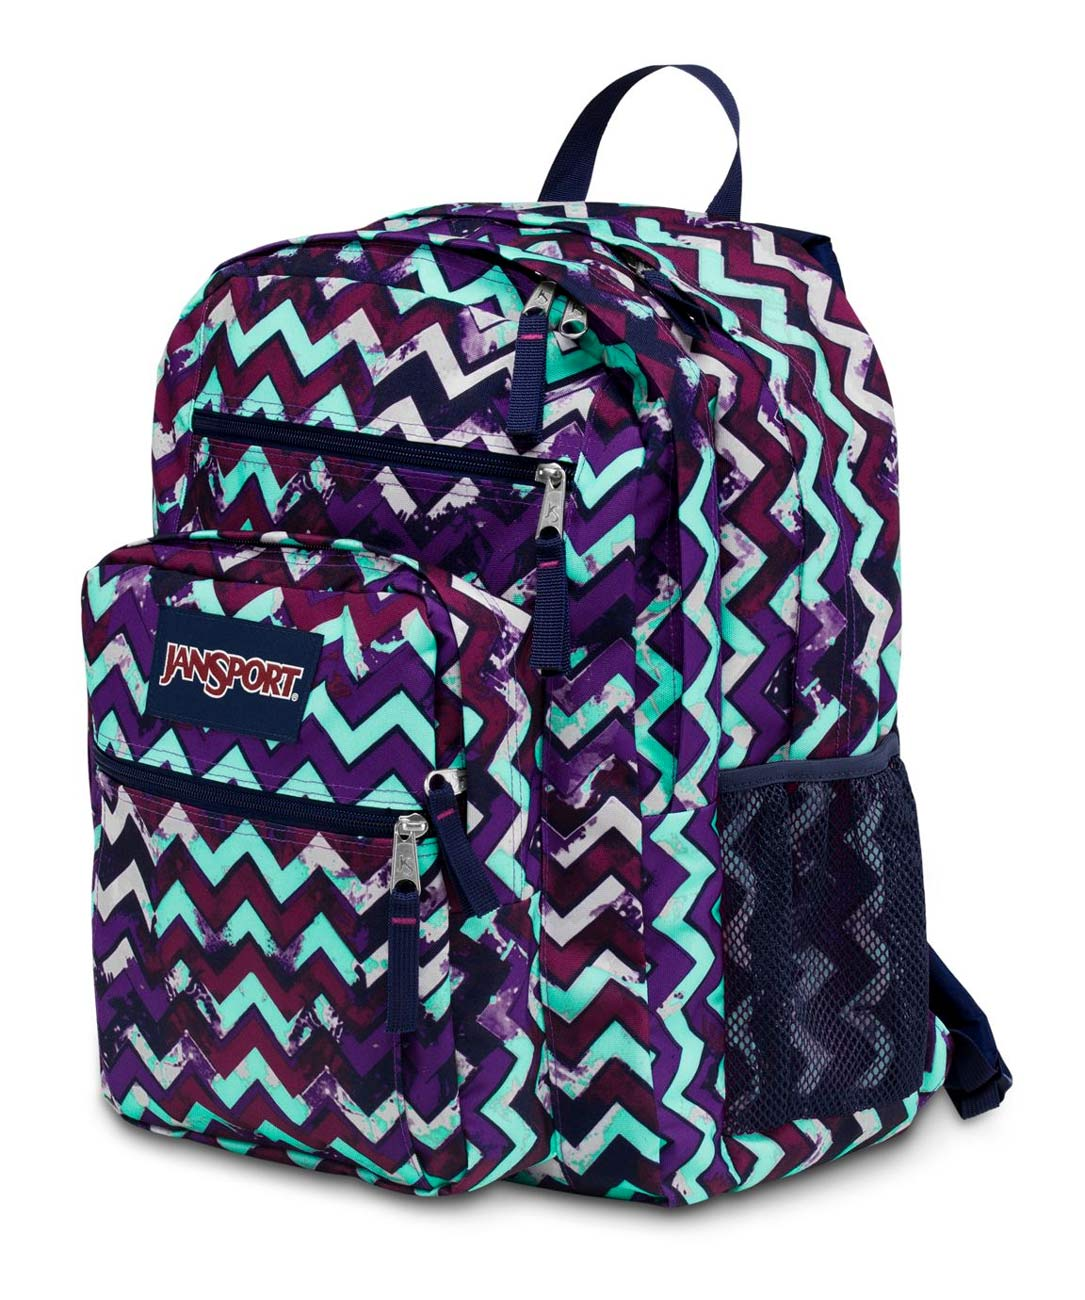 Jansport Big Student Backpack Clearance AkK7fSAL